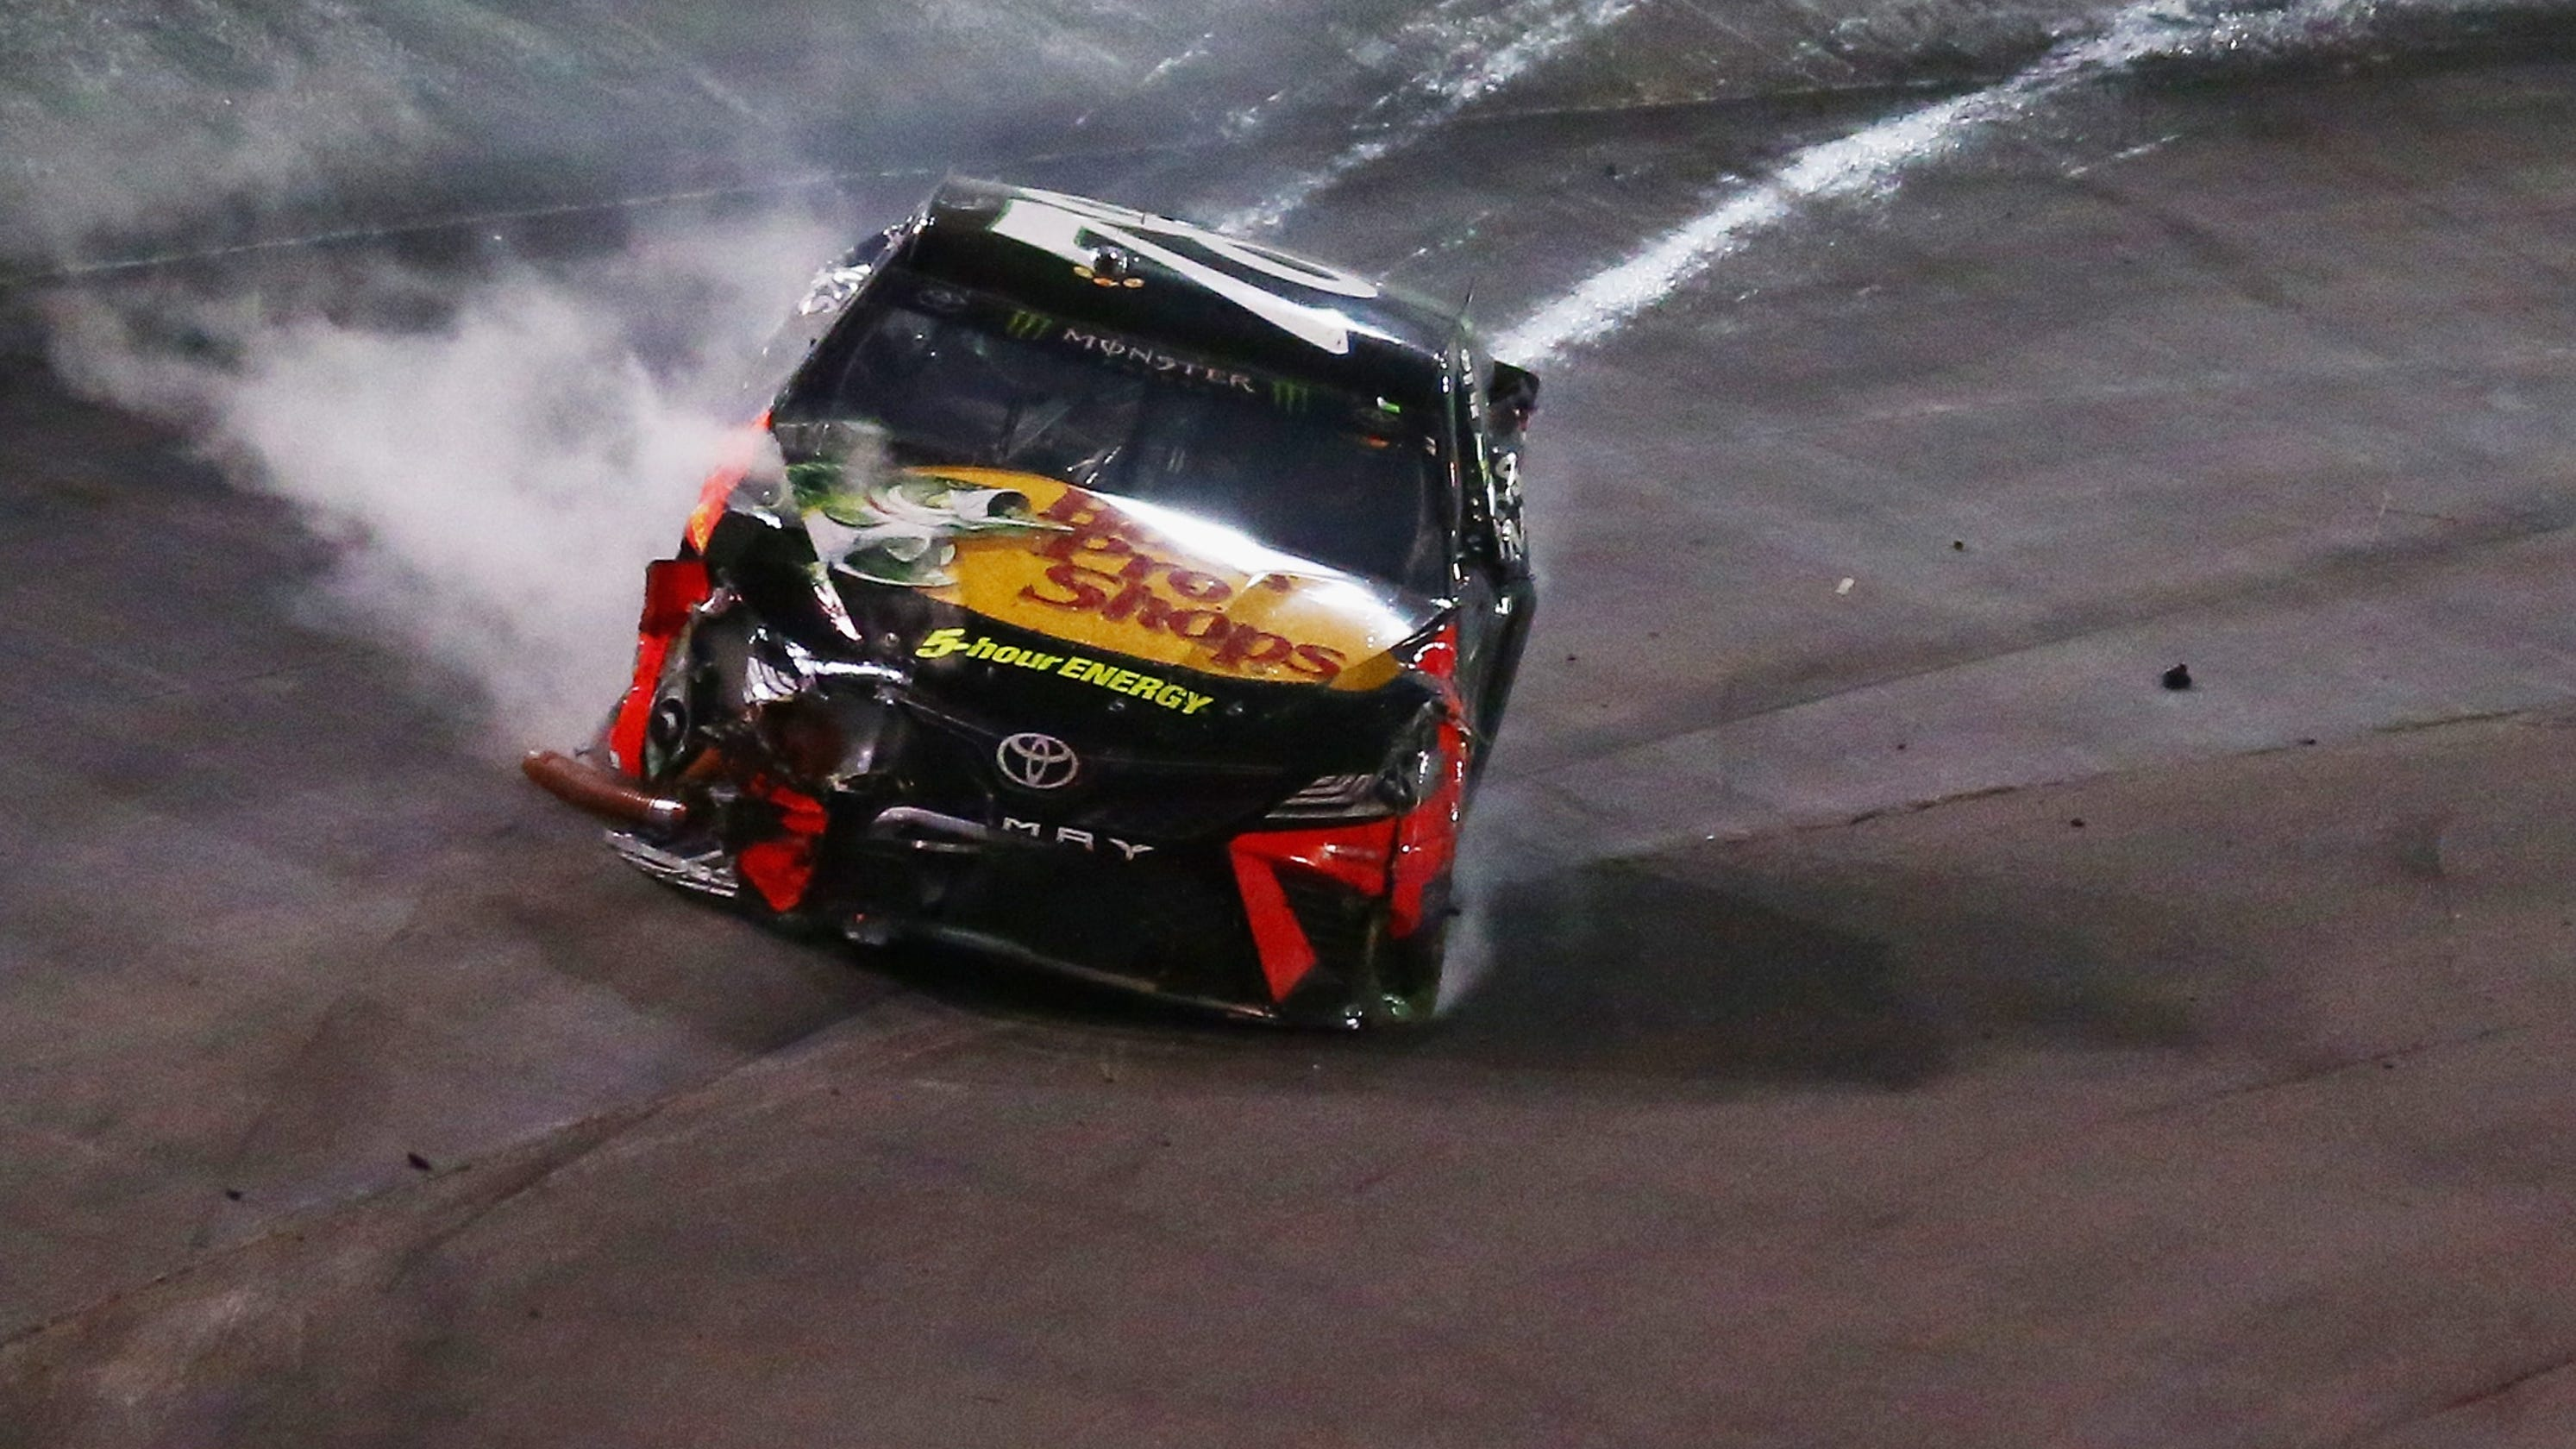 Don't be surprised if there's payback after Kyle Busch's bump of Martin Truex Jr.